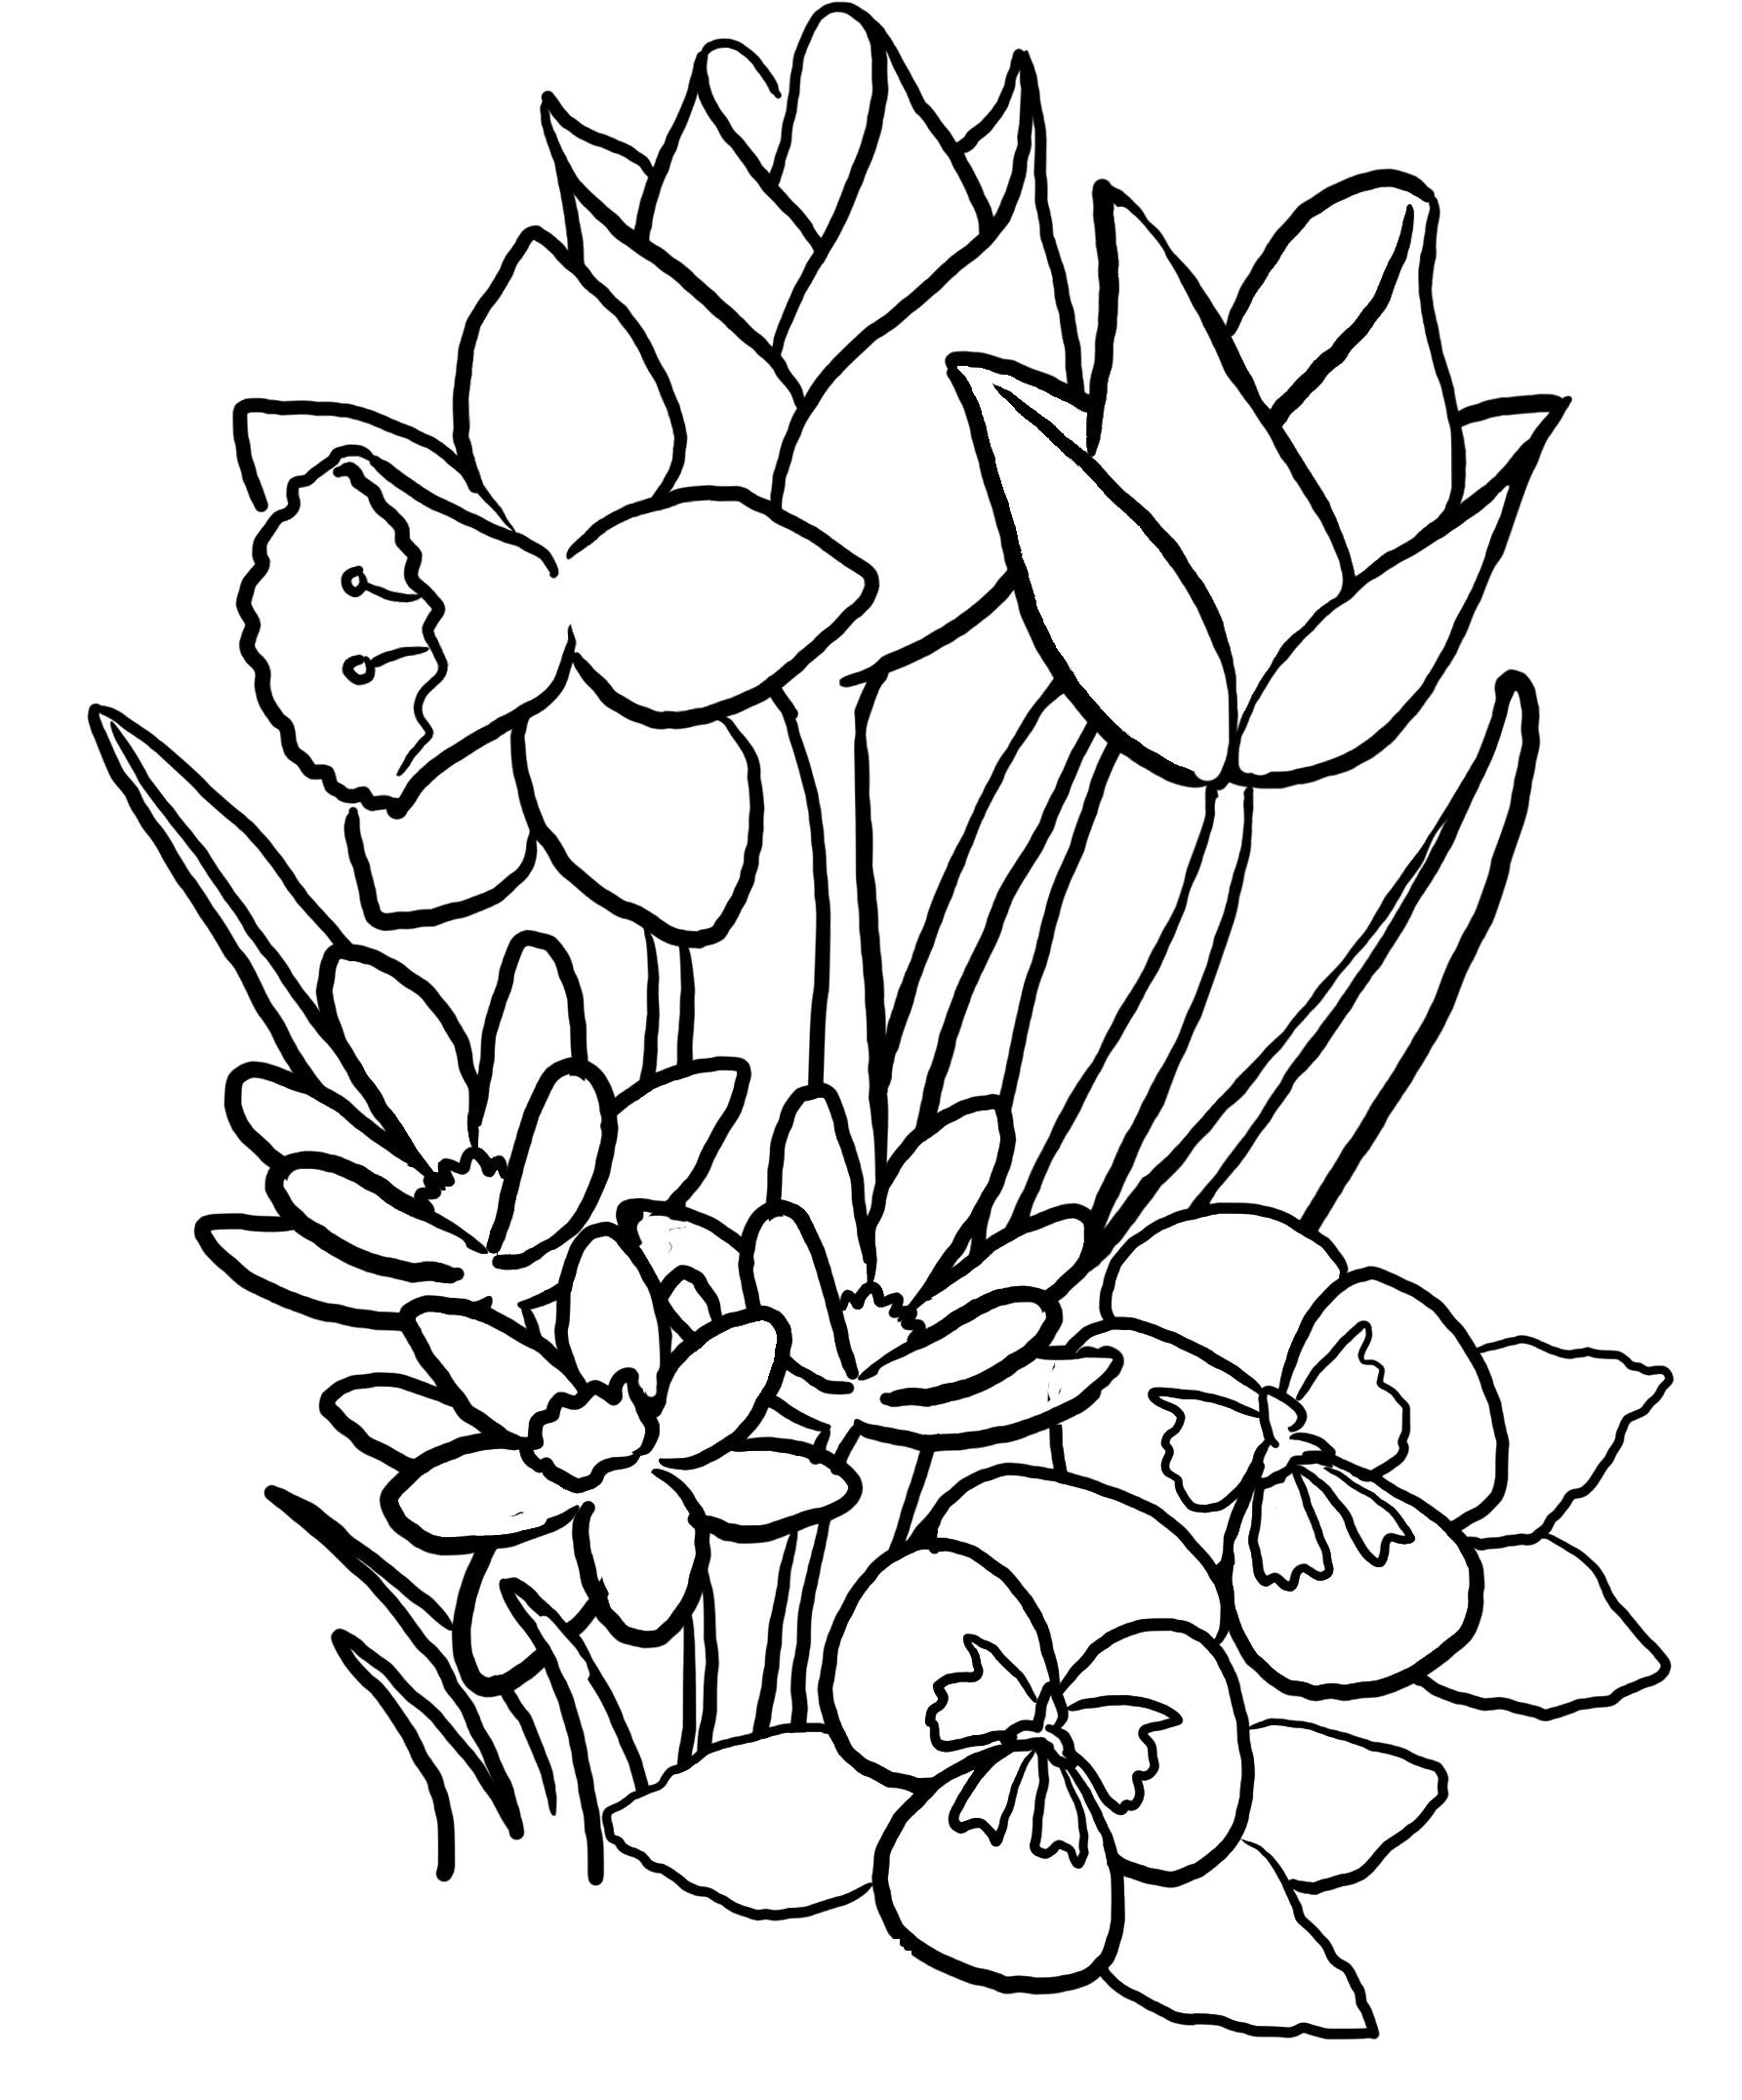 Spring Coloring Sheet Free Download